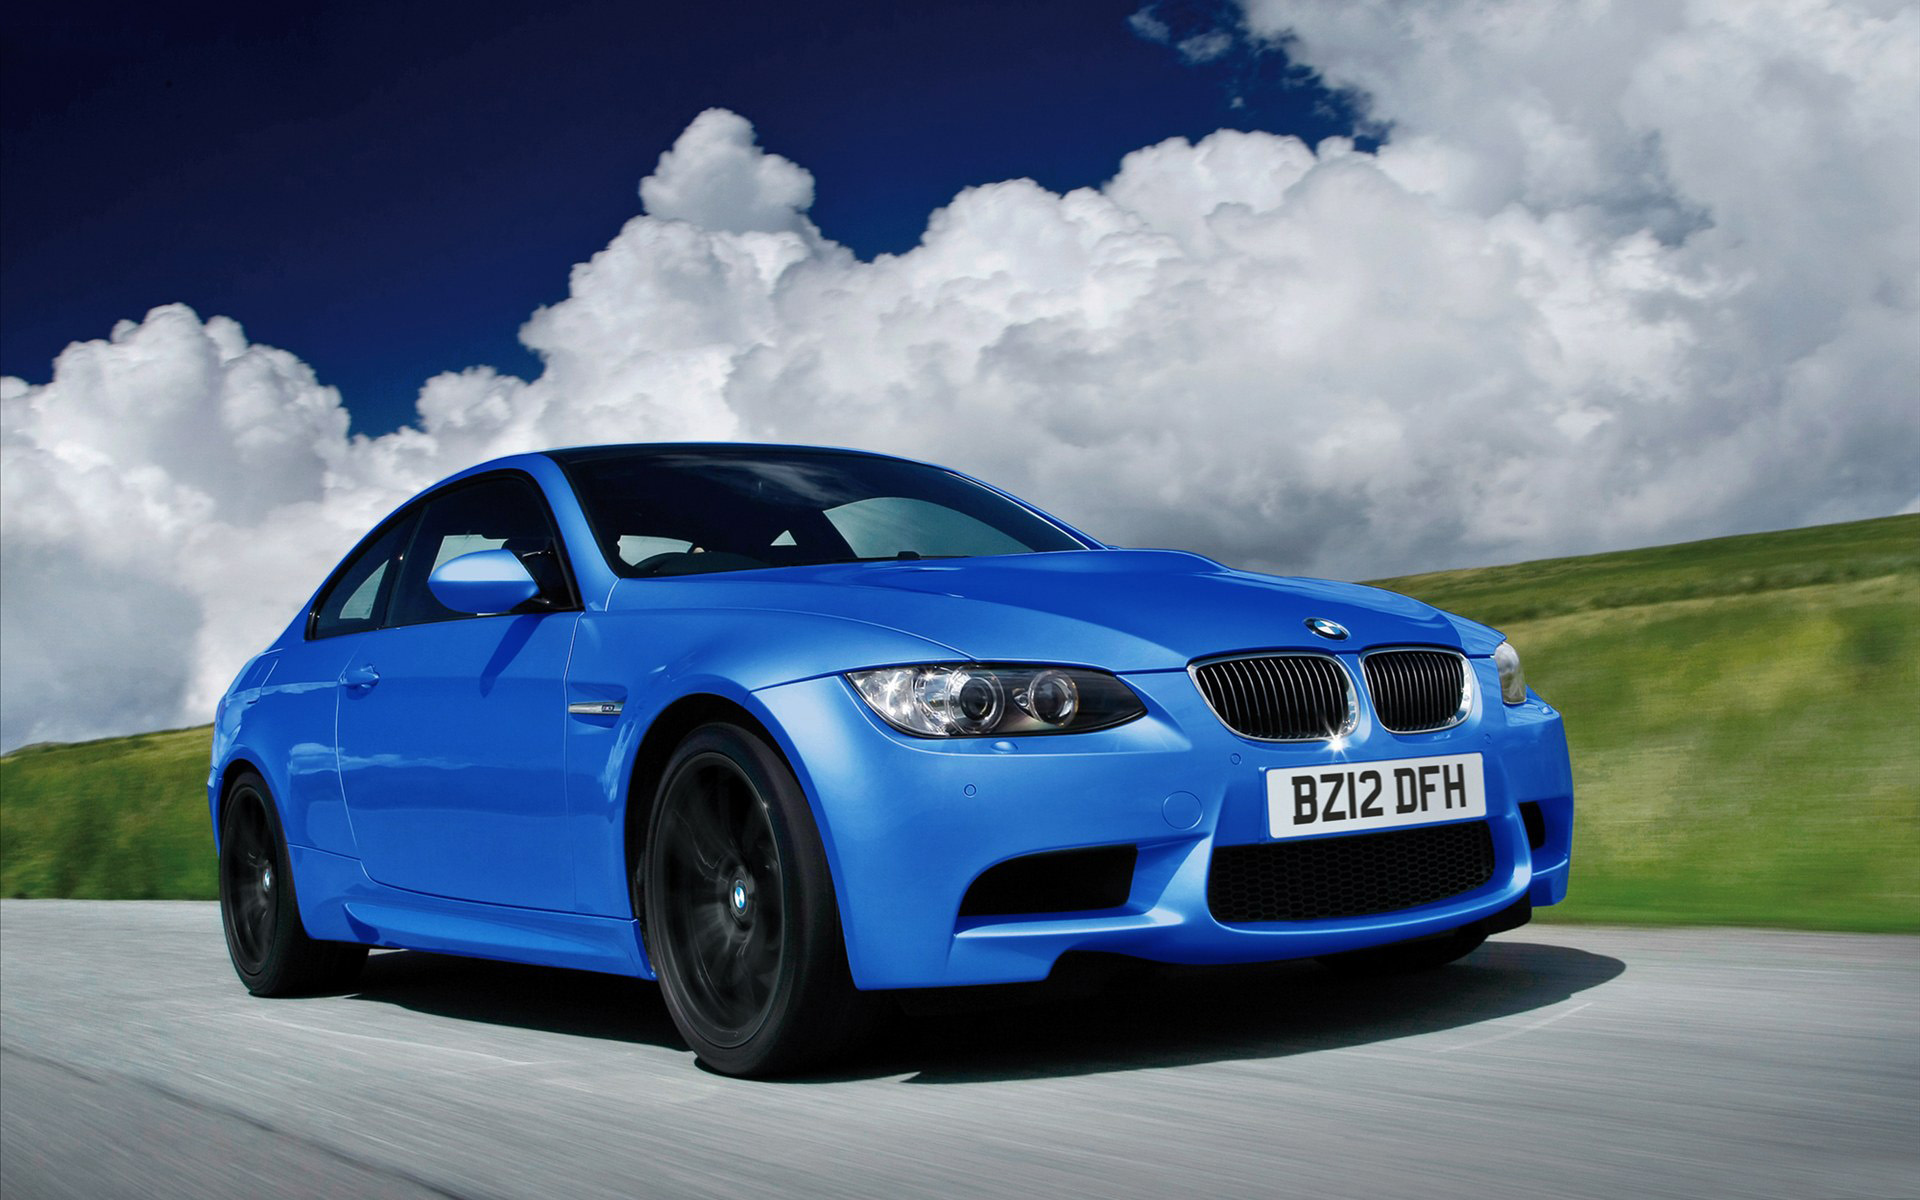 Captivating BMW M3 Limited Edition 2013 Wallpaper